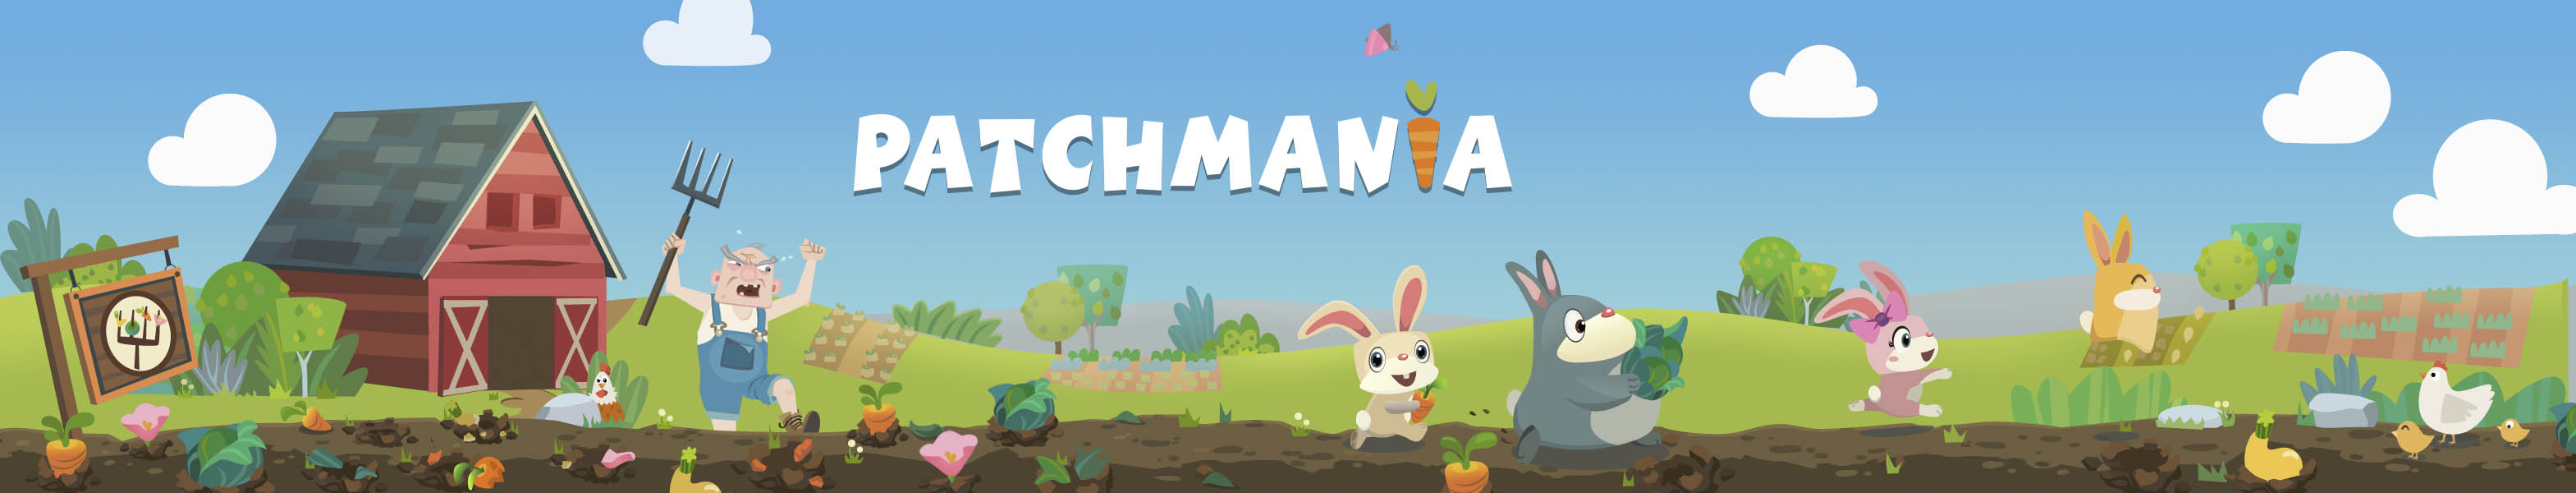 Patchmania Game